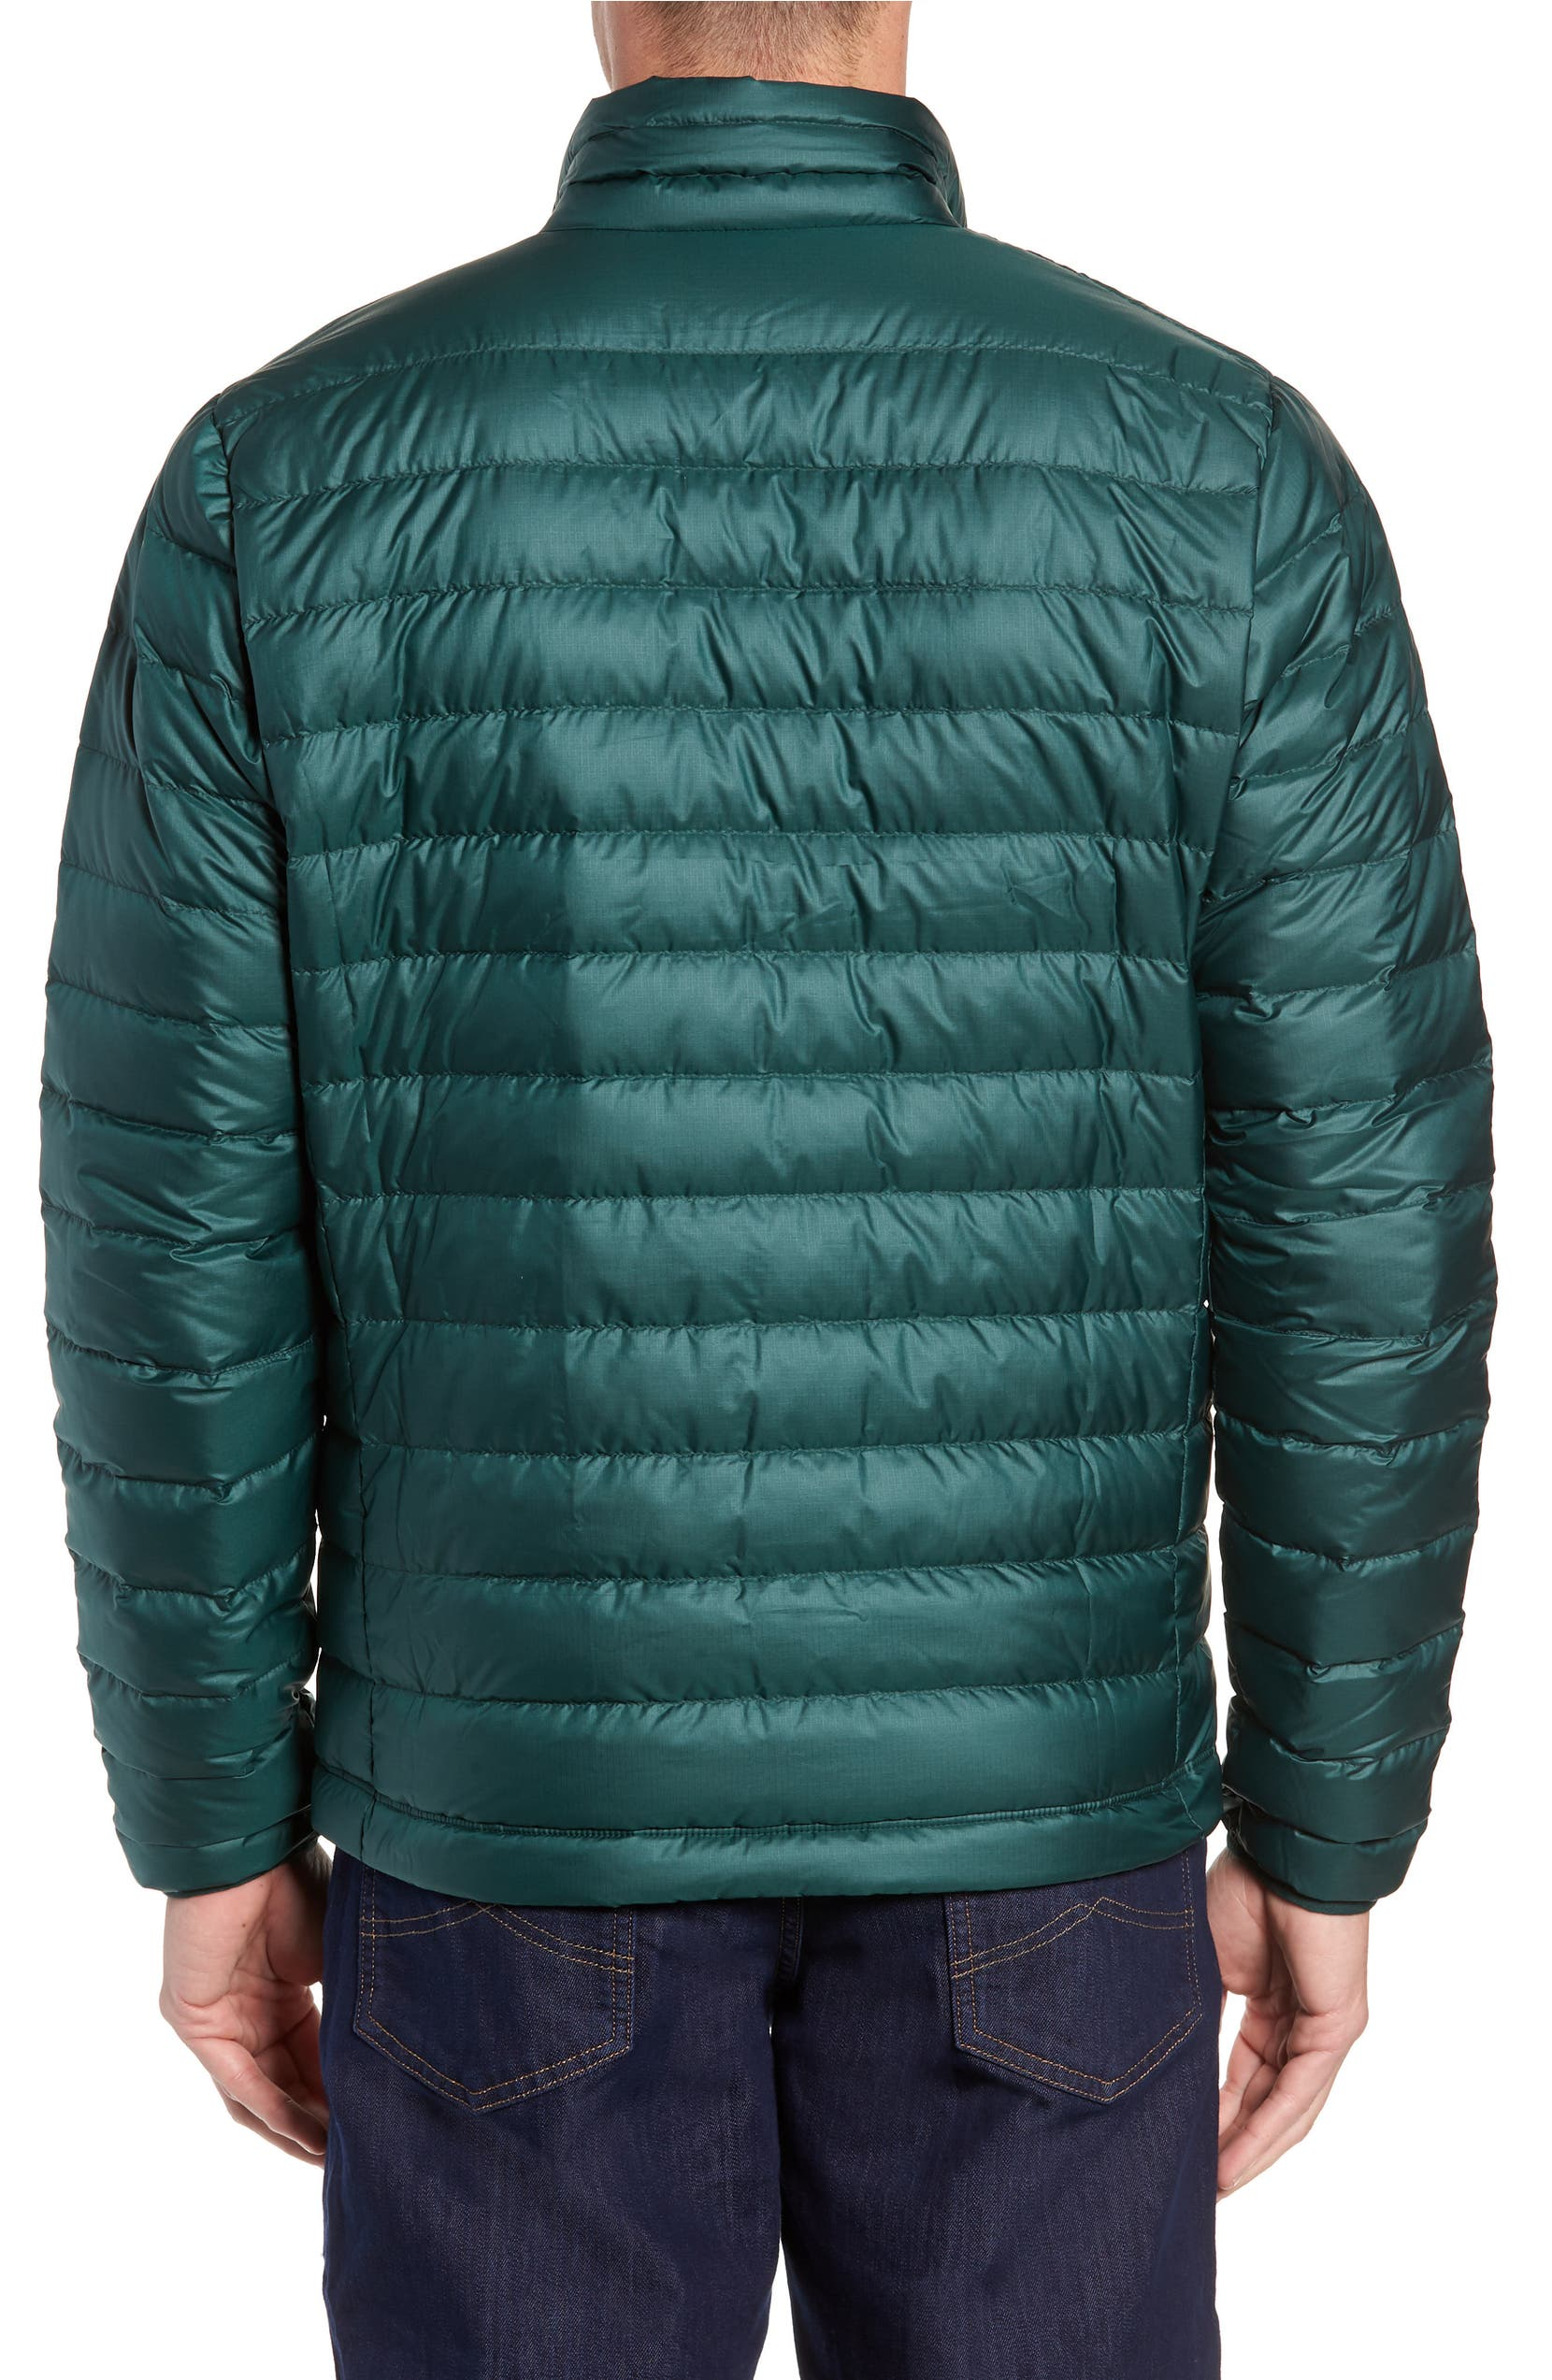 98d9d4e1071 Patagonia Water Repellent Down Jacket